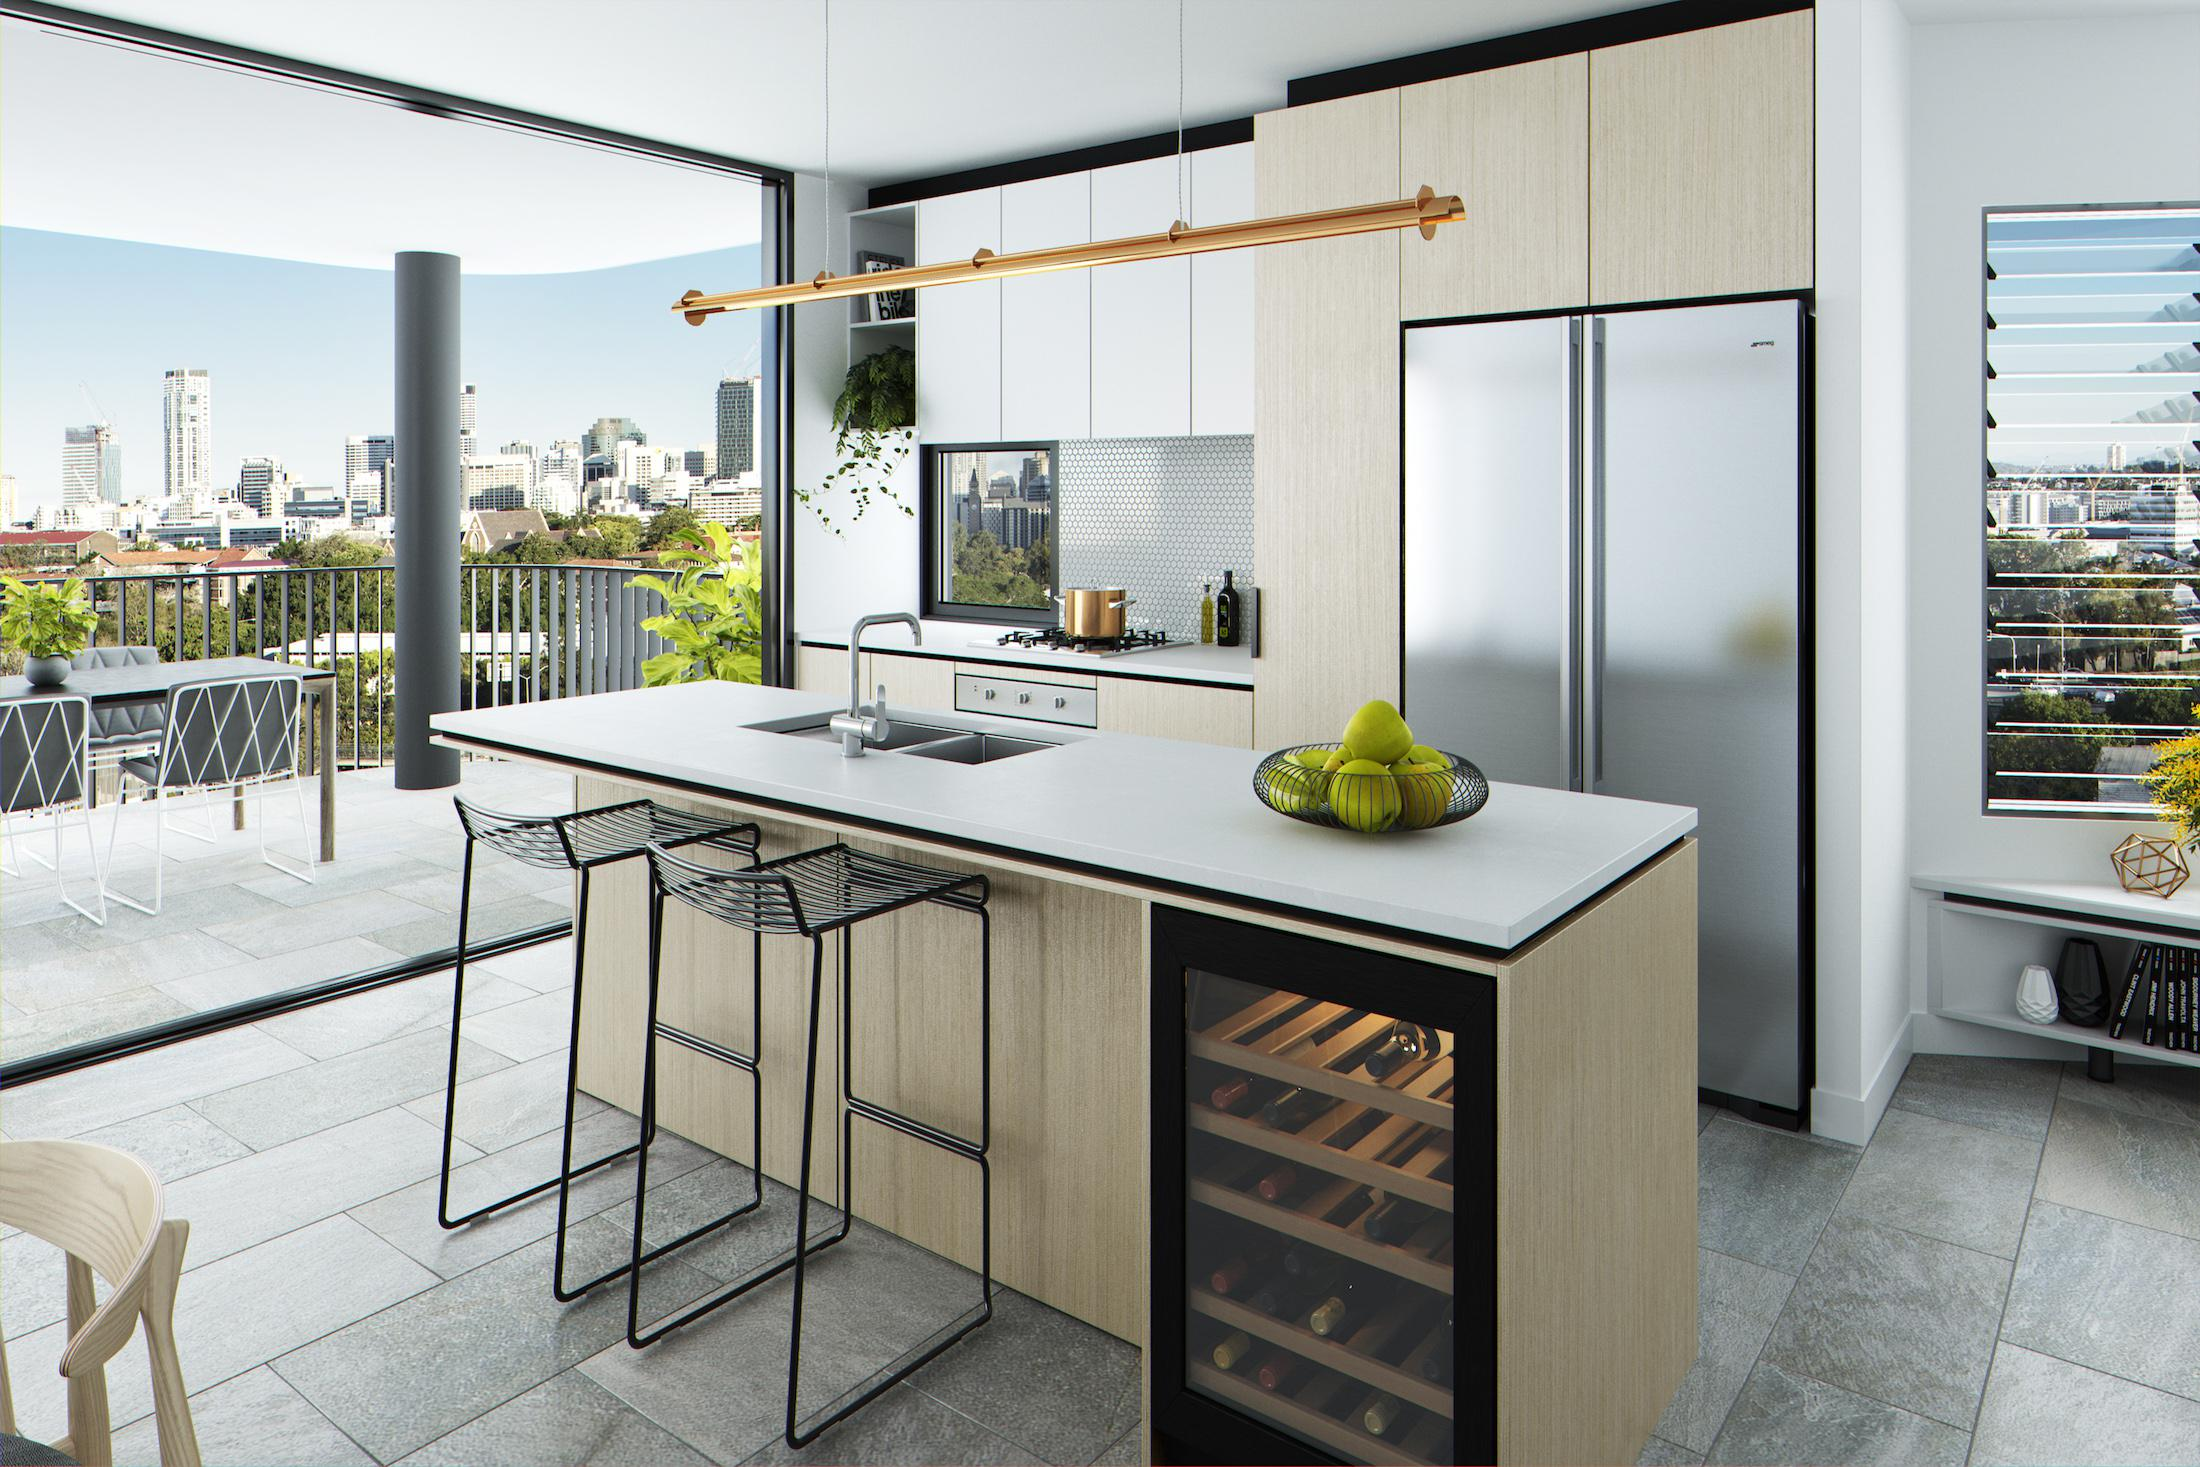 Alto's three-bedroom kitchen render